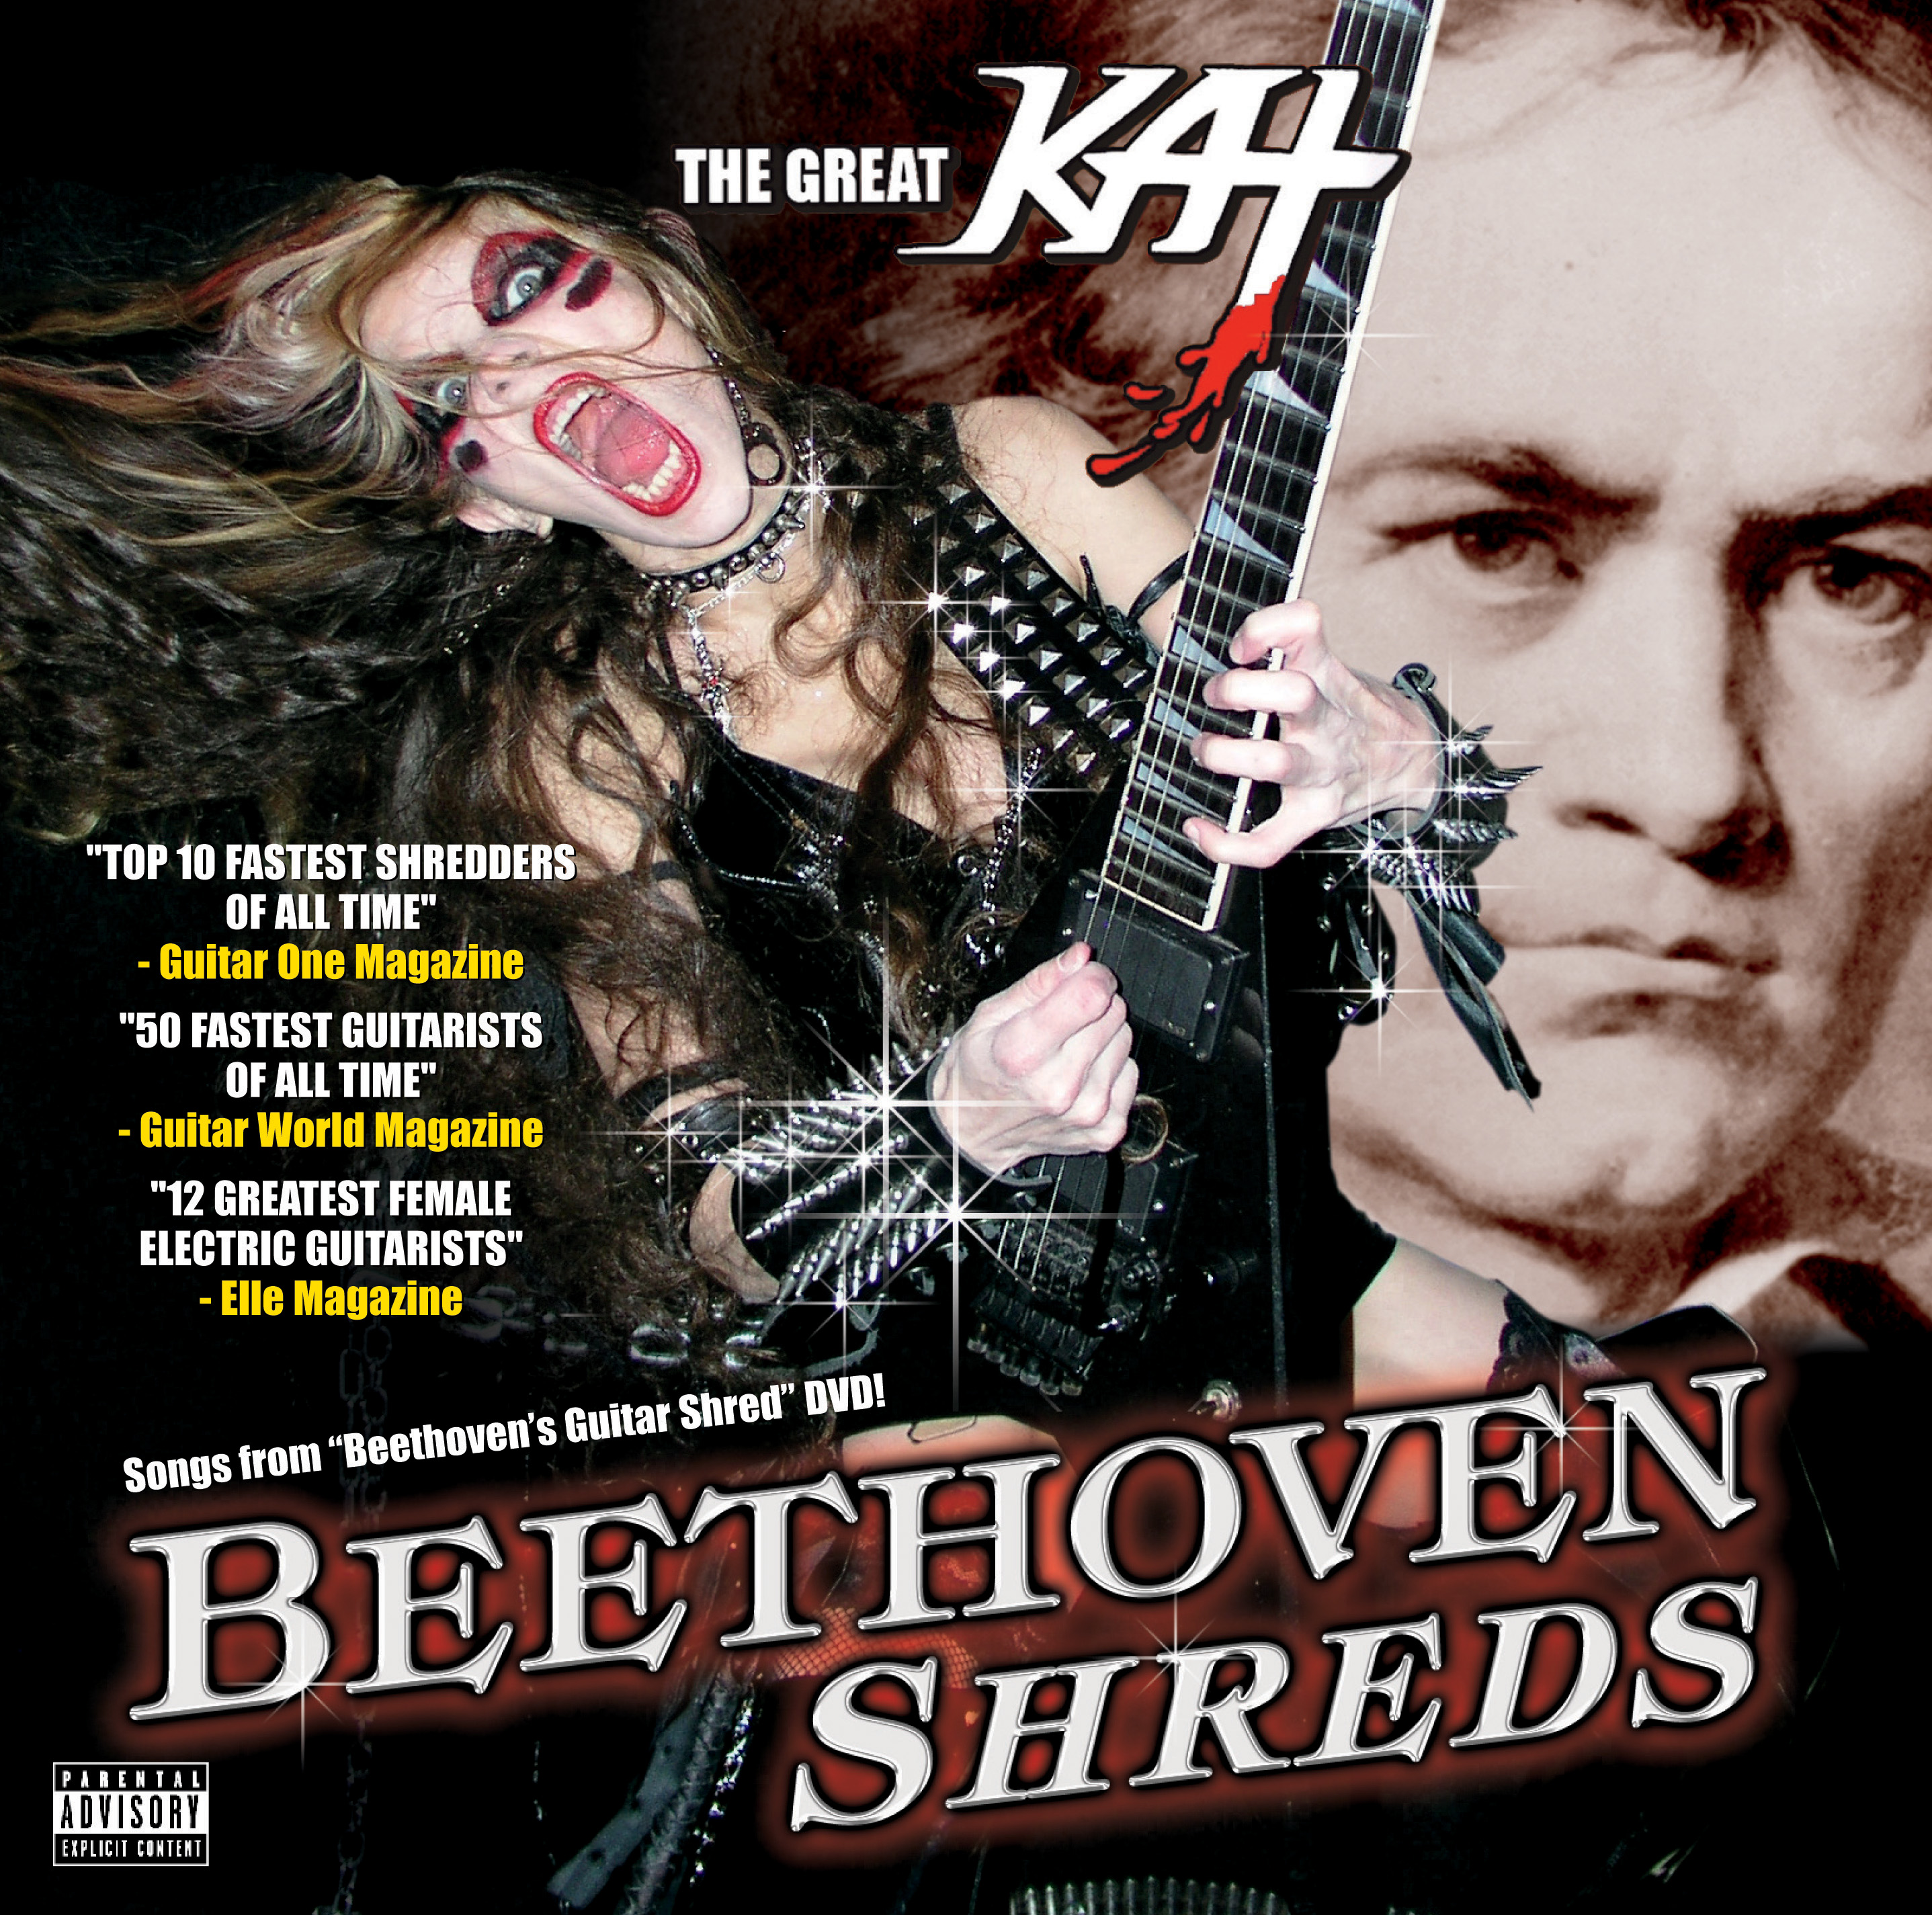 The Great Kat – Beethoven Shreds – 6 years on